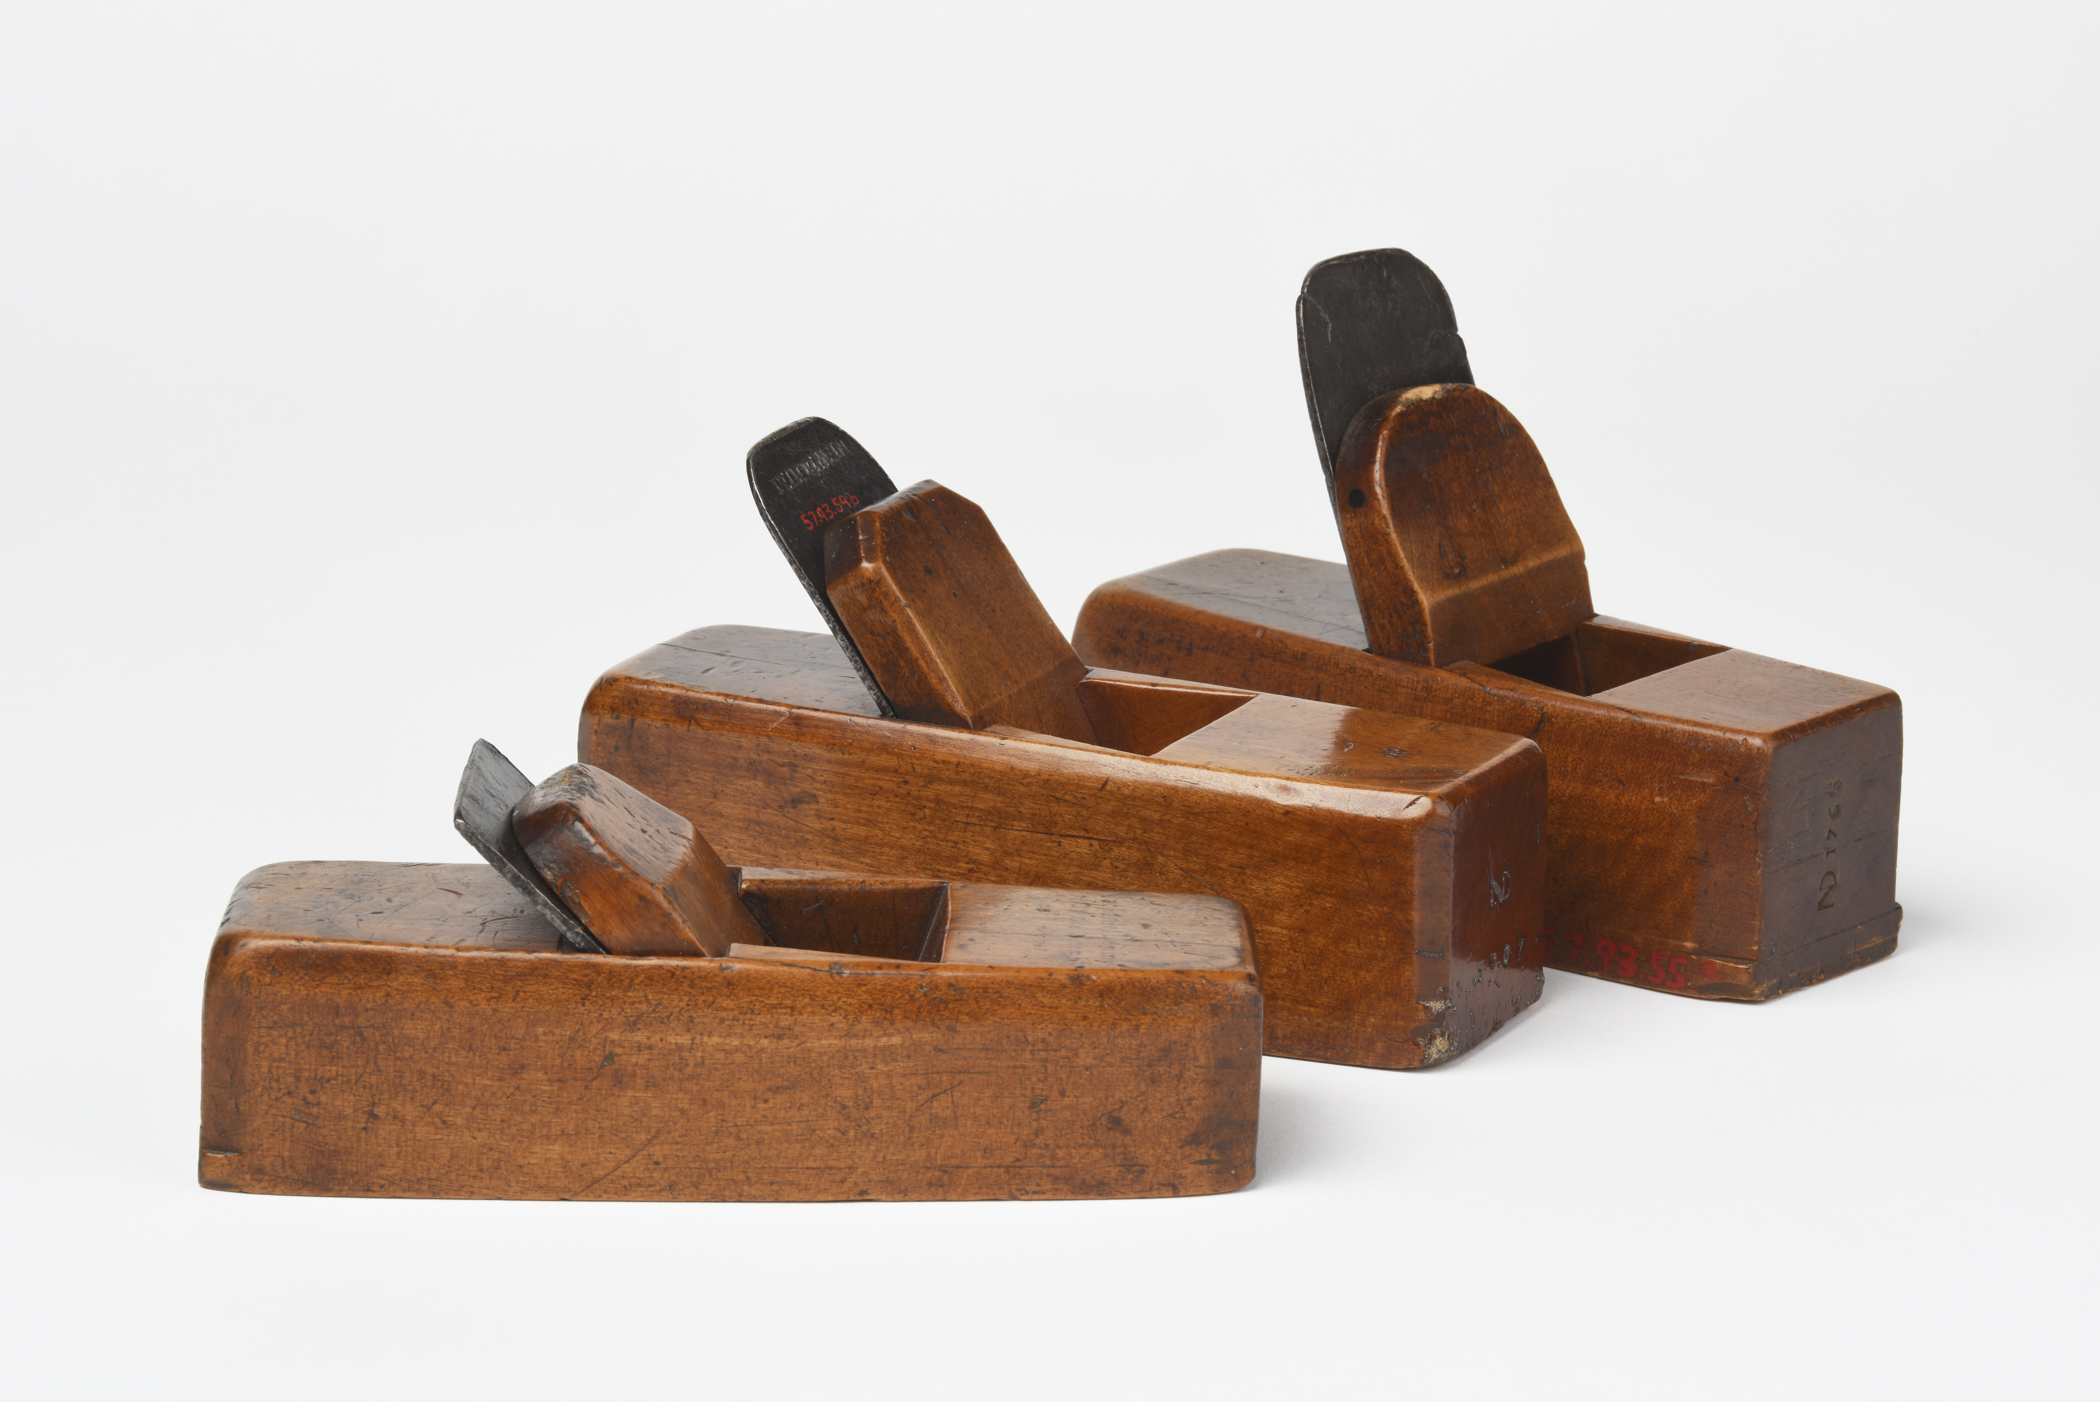 Tools - Tool (for wood)